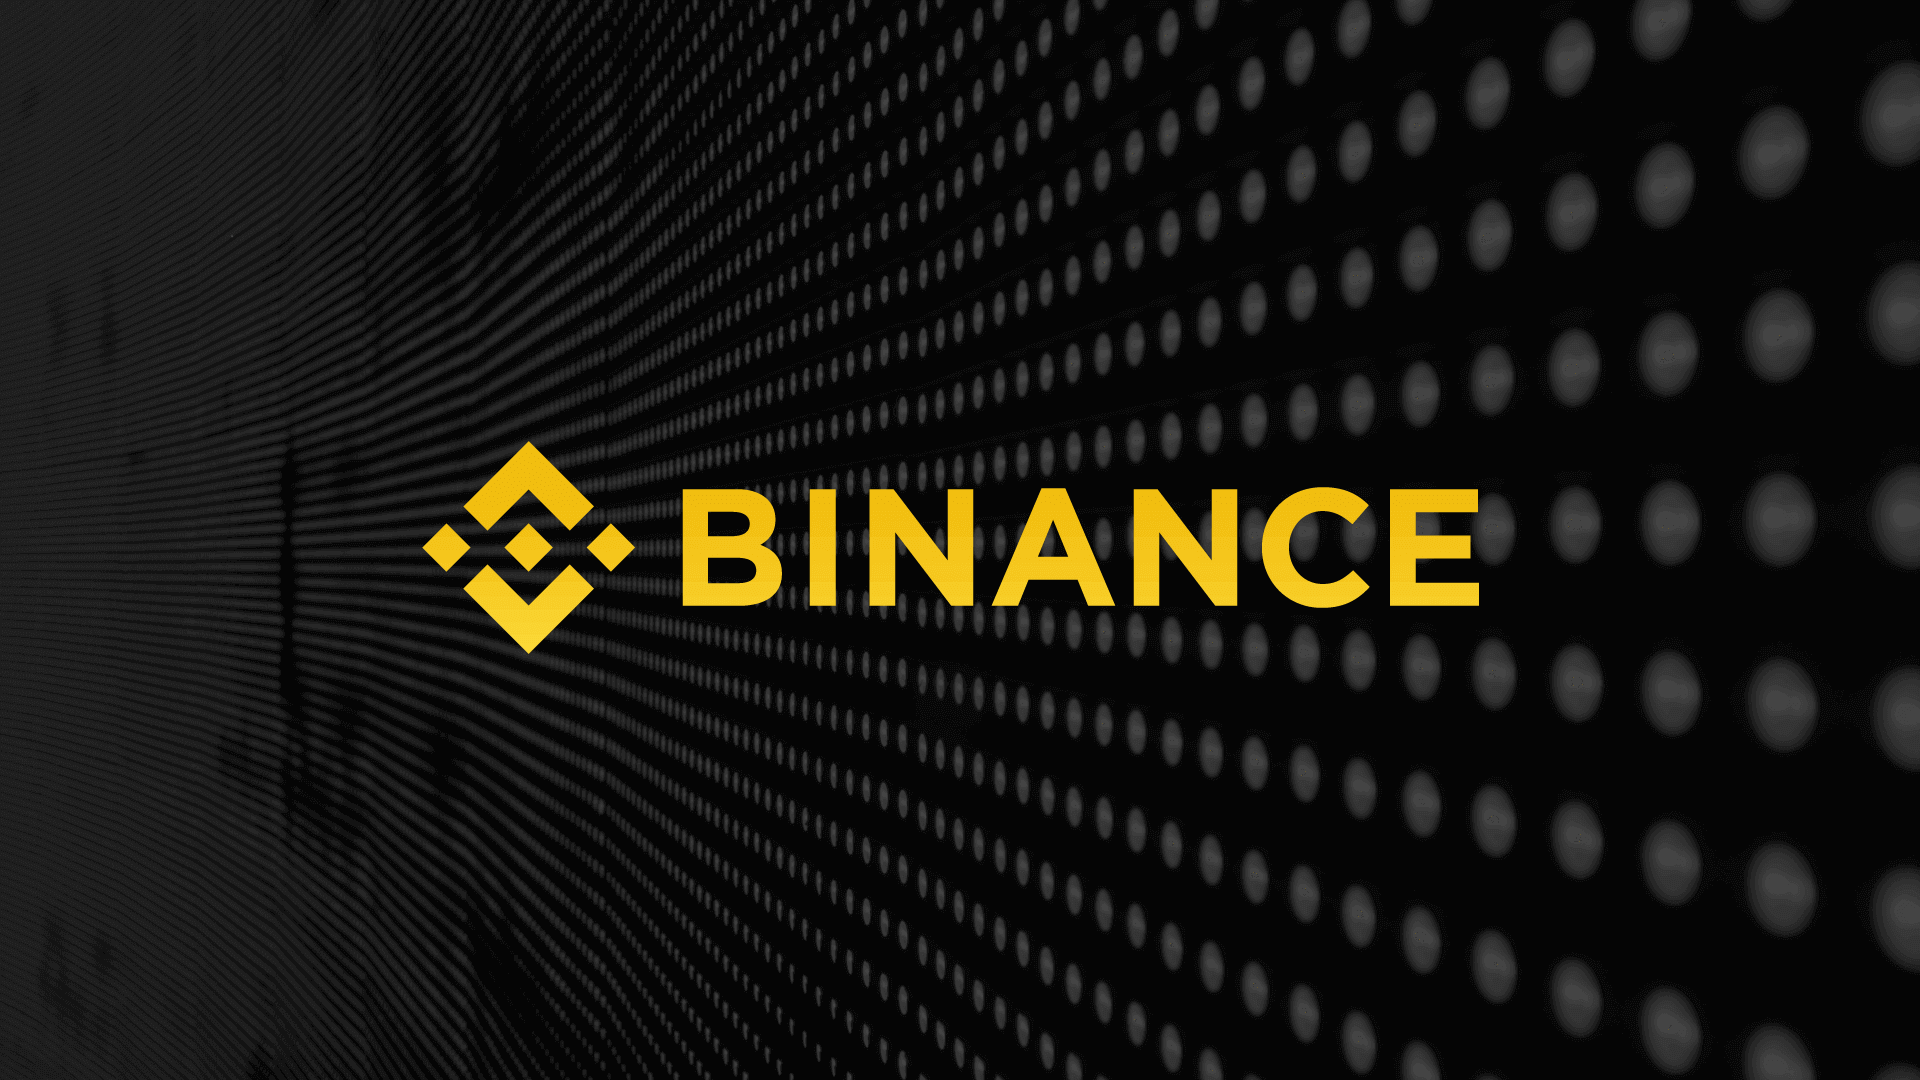 Binance Could Bring Its Own Stablecoin Offering to Compete with Tether